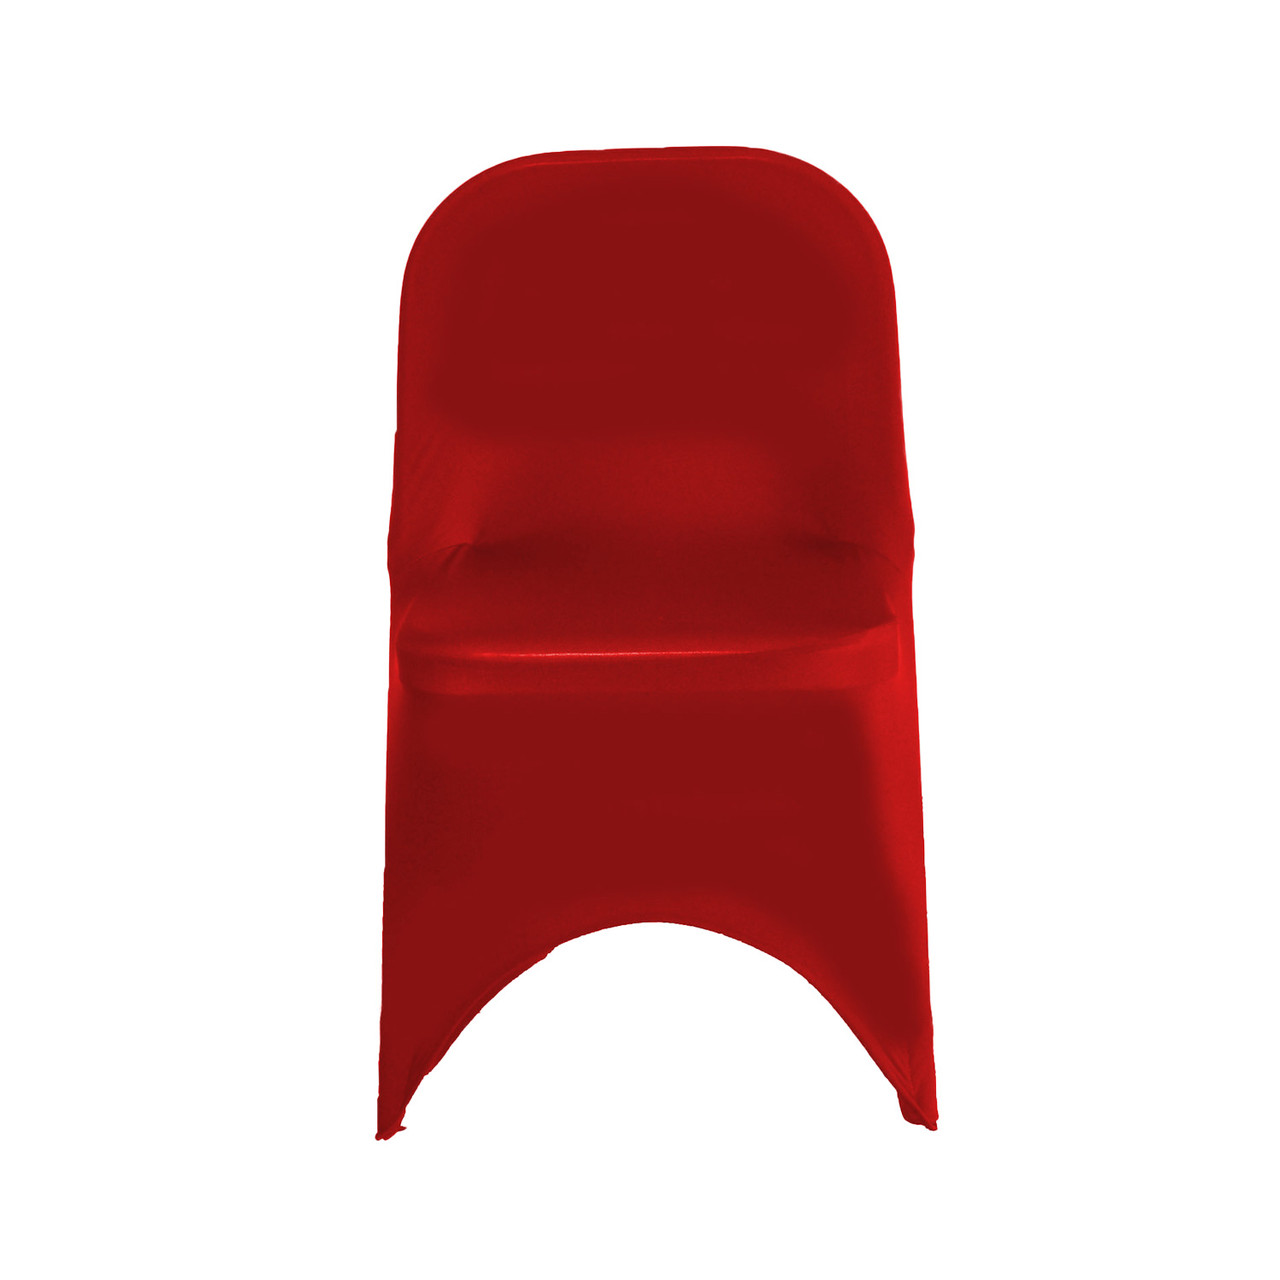 Pleasing Stretch Spandex Folding Chair Cover Red Gmtry Best Dining Table And Chair Ideas Images Gmtryco